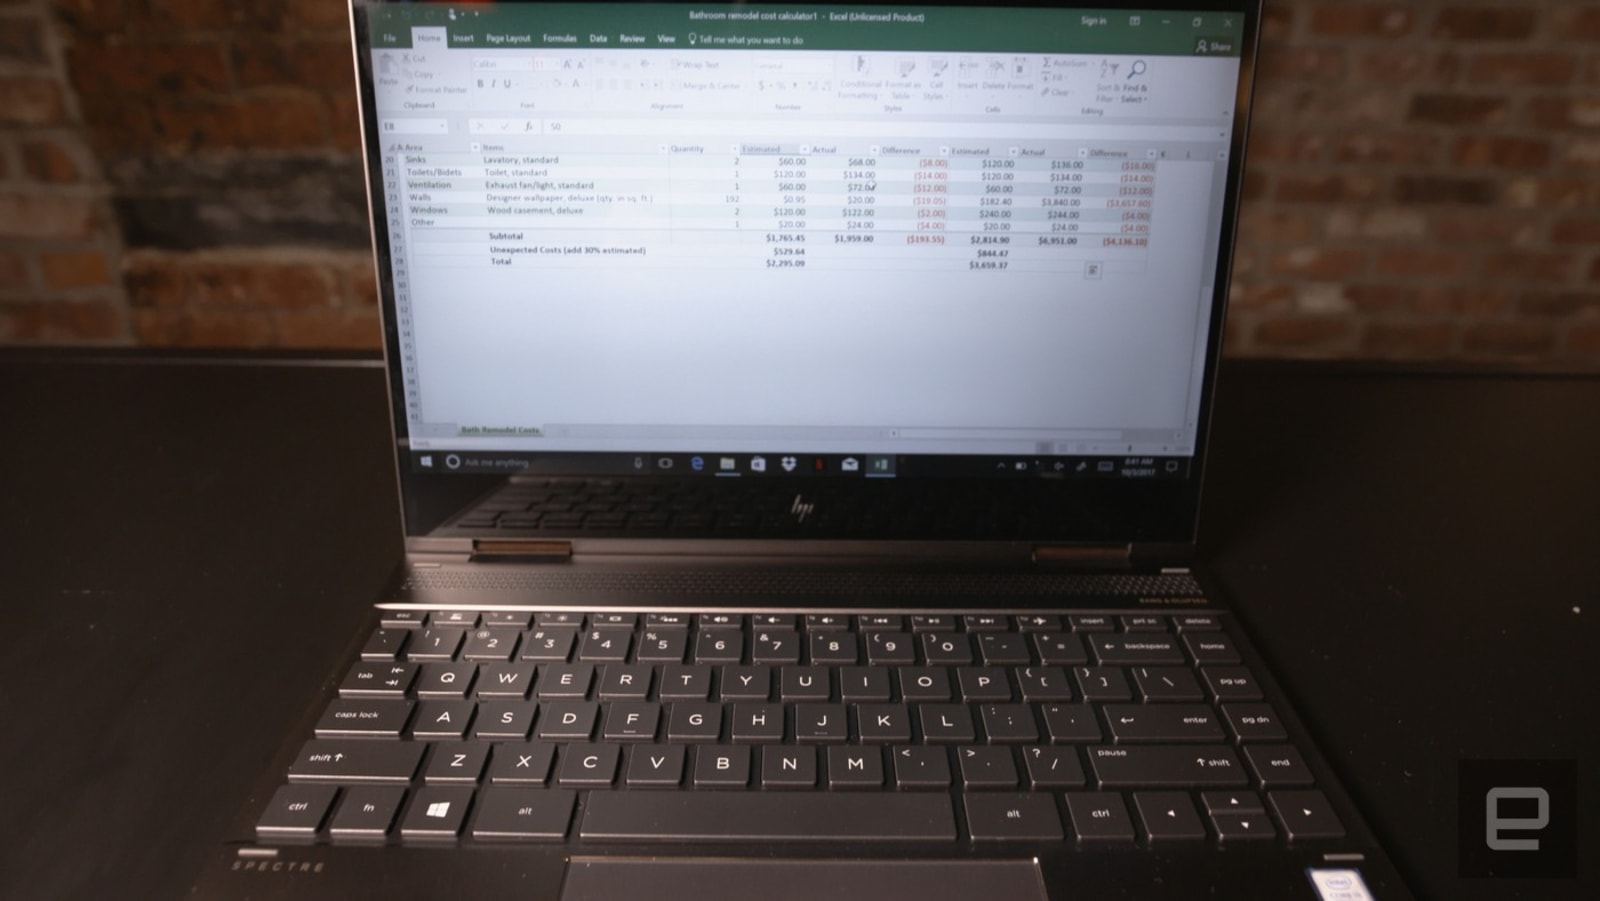 Hps Spectre X360 13 Hides Your Screen At A Push Of Button Hp Ae519tu Frankly The Text On Our Demo Unit Was So Small That I Probably Couldnt Read What It Said Unless Up Close Either Still Having Privacy